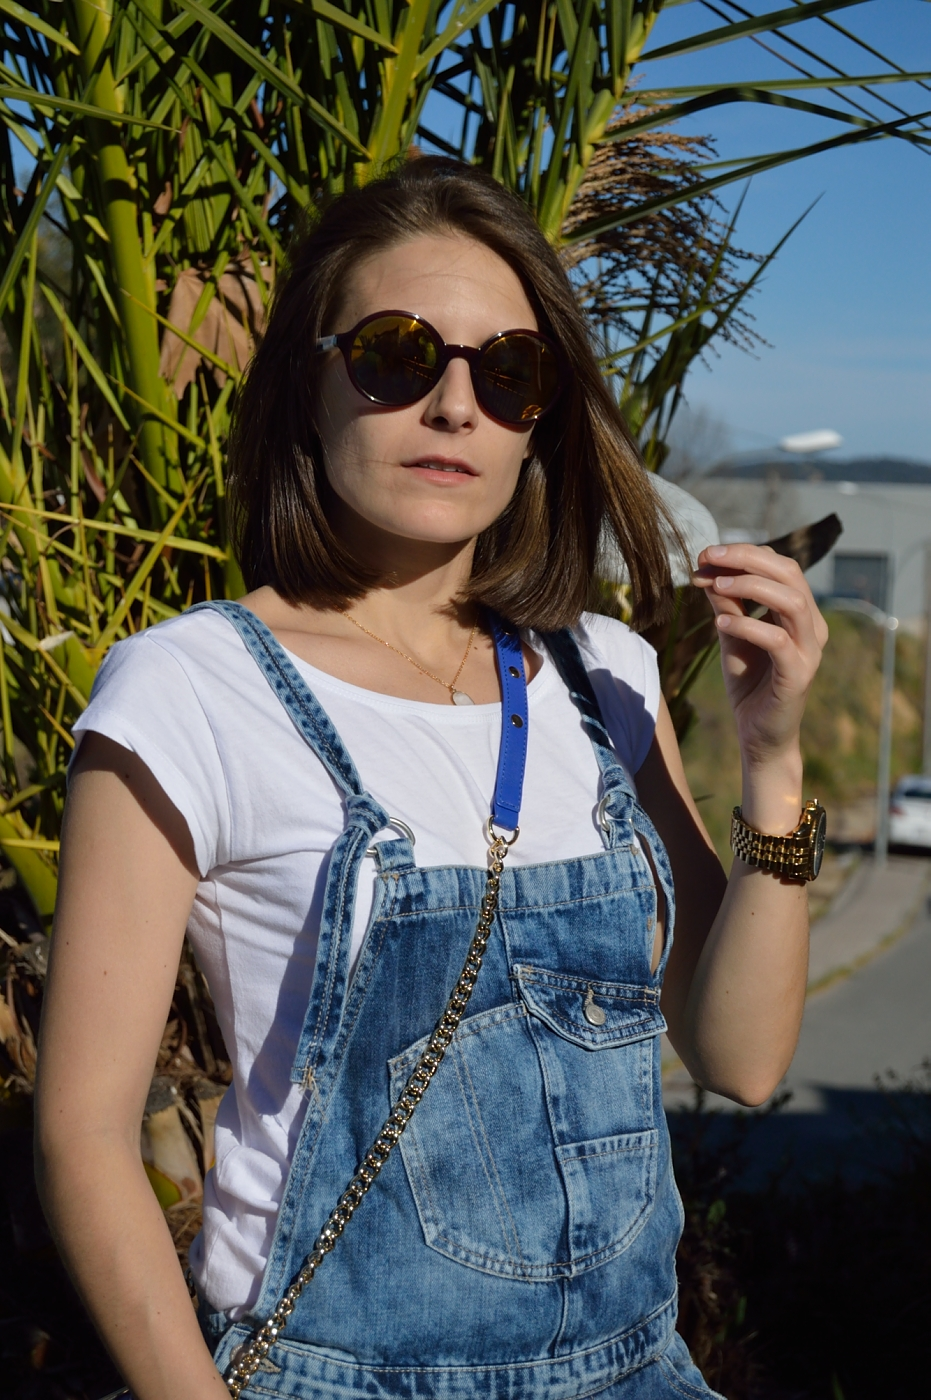 lara-vazquez-mad-lula-style-ootd-denim-fashion-streetstyle-white-tee-blue